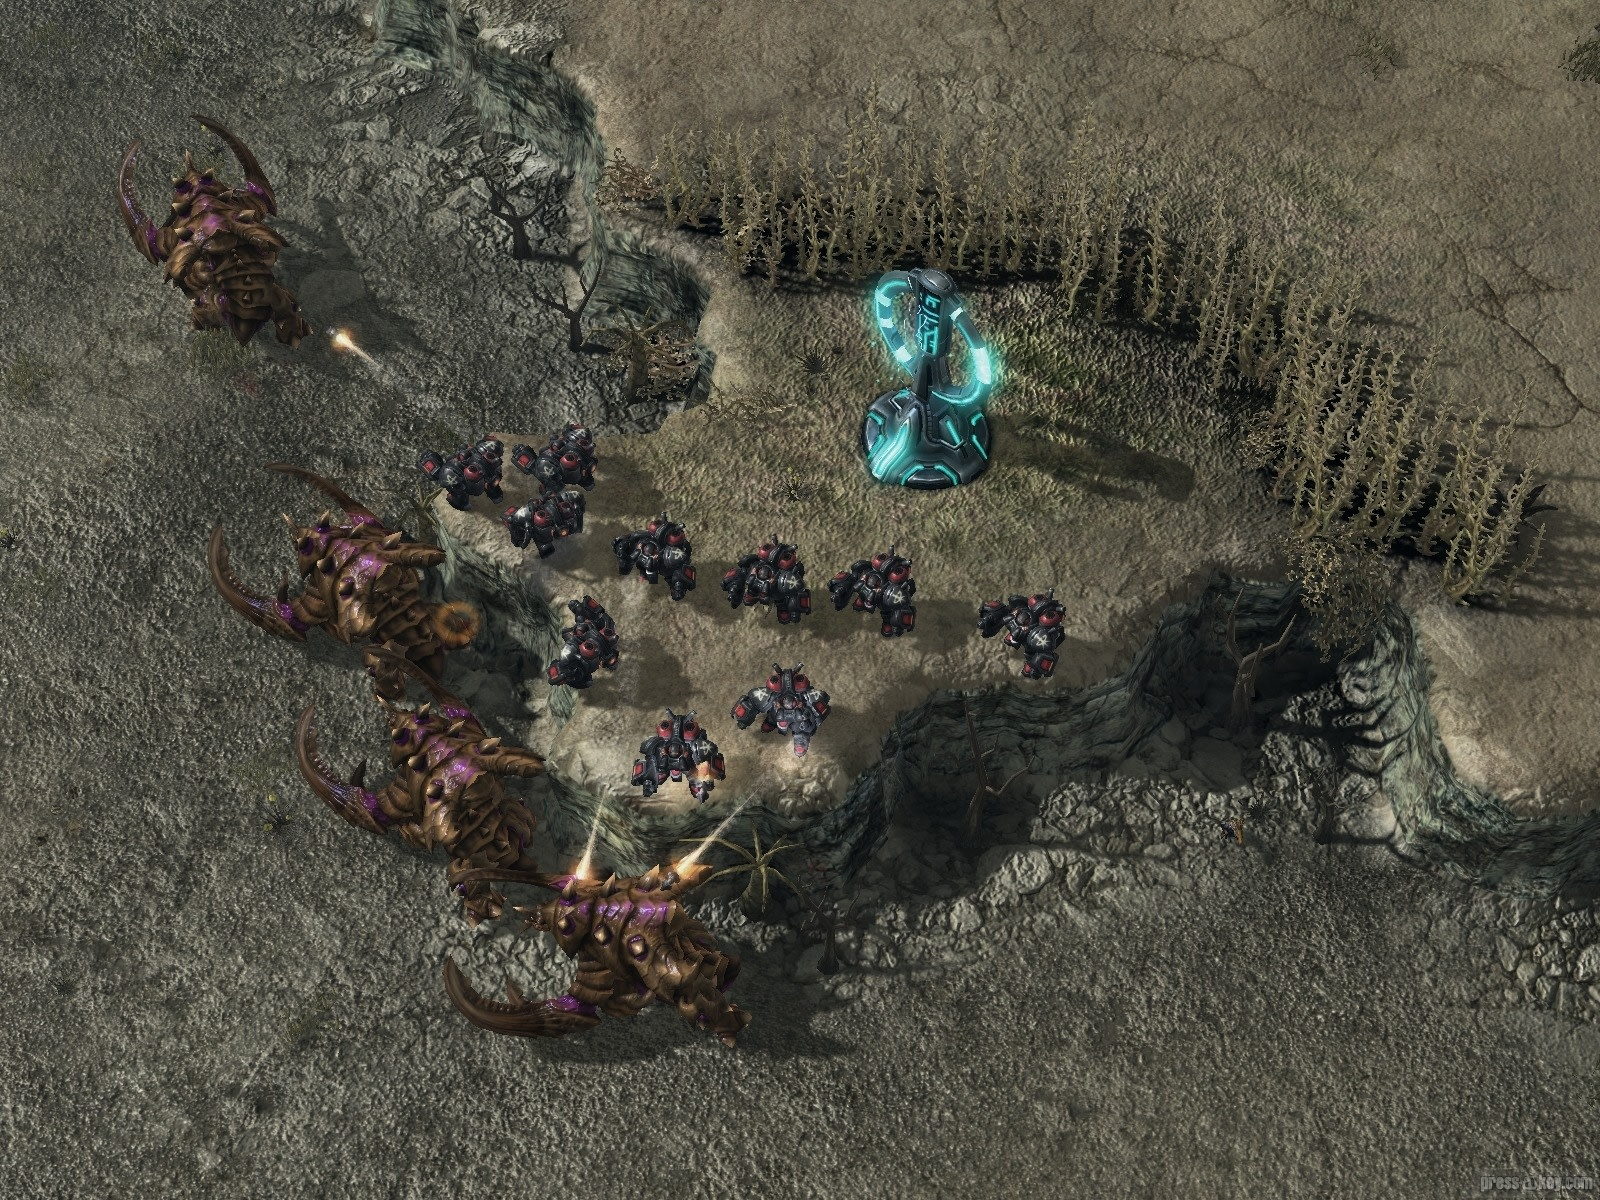 The Starcraft 2 Marauder is the crunching anti-armor unit in the